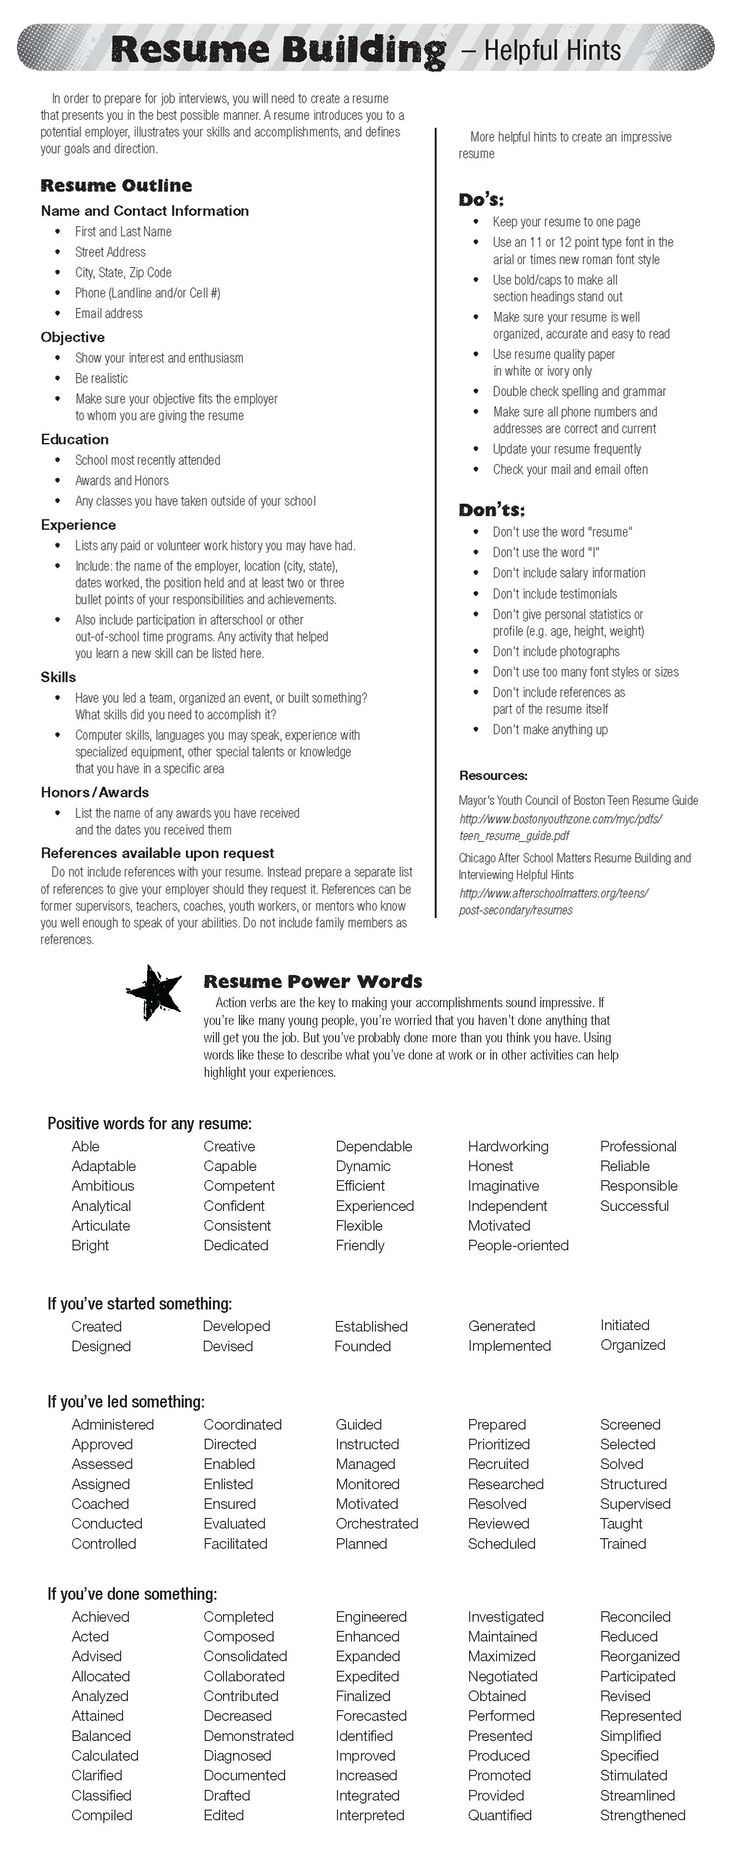 Opposenewapstandardsus  Pleasing  Ideas About Resume On Pinterest  Cv Format Resume  With Excellent Check Out Todays Resume Building Tips Resume Resumepowerwords With Beautiful Cna Duties Resume Also Power Resume Words In Addition Indeed Find Resumes And Optician Resume As Well As Professional Resume Sample Additionally Cook Job Description For Resume From Pinterestcom With Opposenewapstandardsus  Excellent  Ideas About Resume On Pinterest  Cv Format Resume  With Beautiful Check Out Todays Resume Building Tips Resume Resumepowerwords And Pleasing Cna Duties Resume Also Power Resume Words In Addition Indeed Find Resumes From Pinterestcom